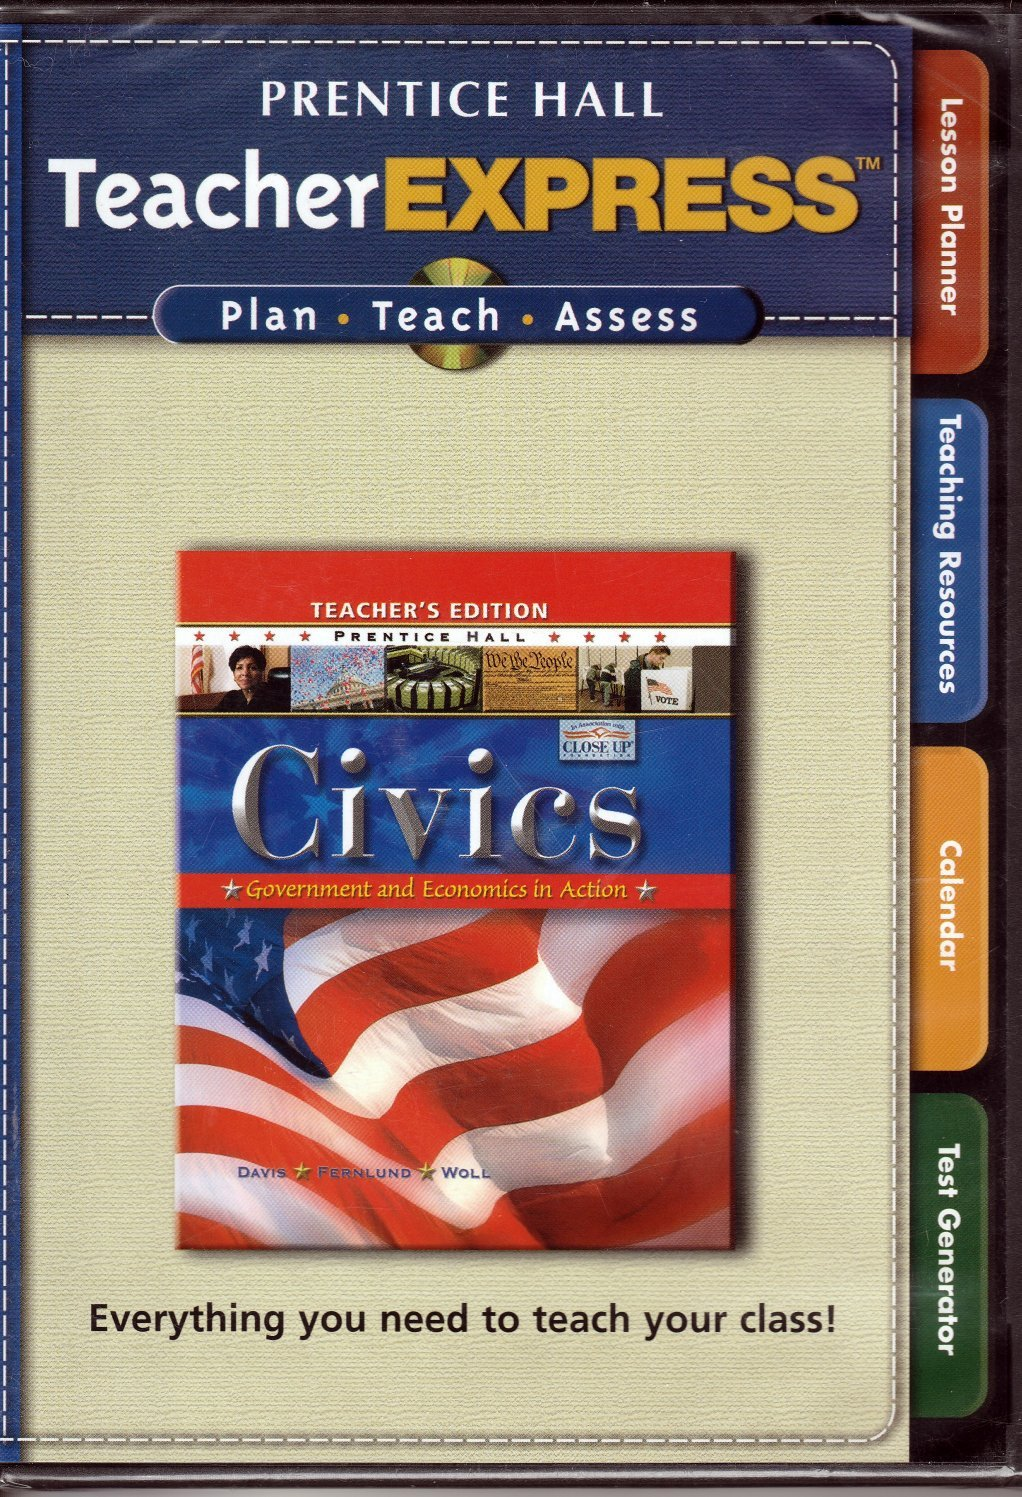 Teacher Express for Civics, Government and Economics in Action: Amazon.com:  Books